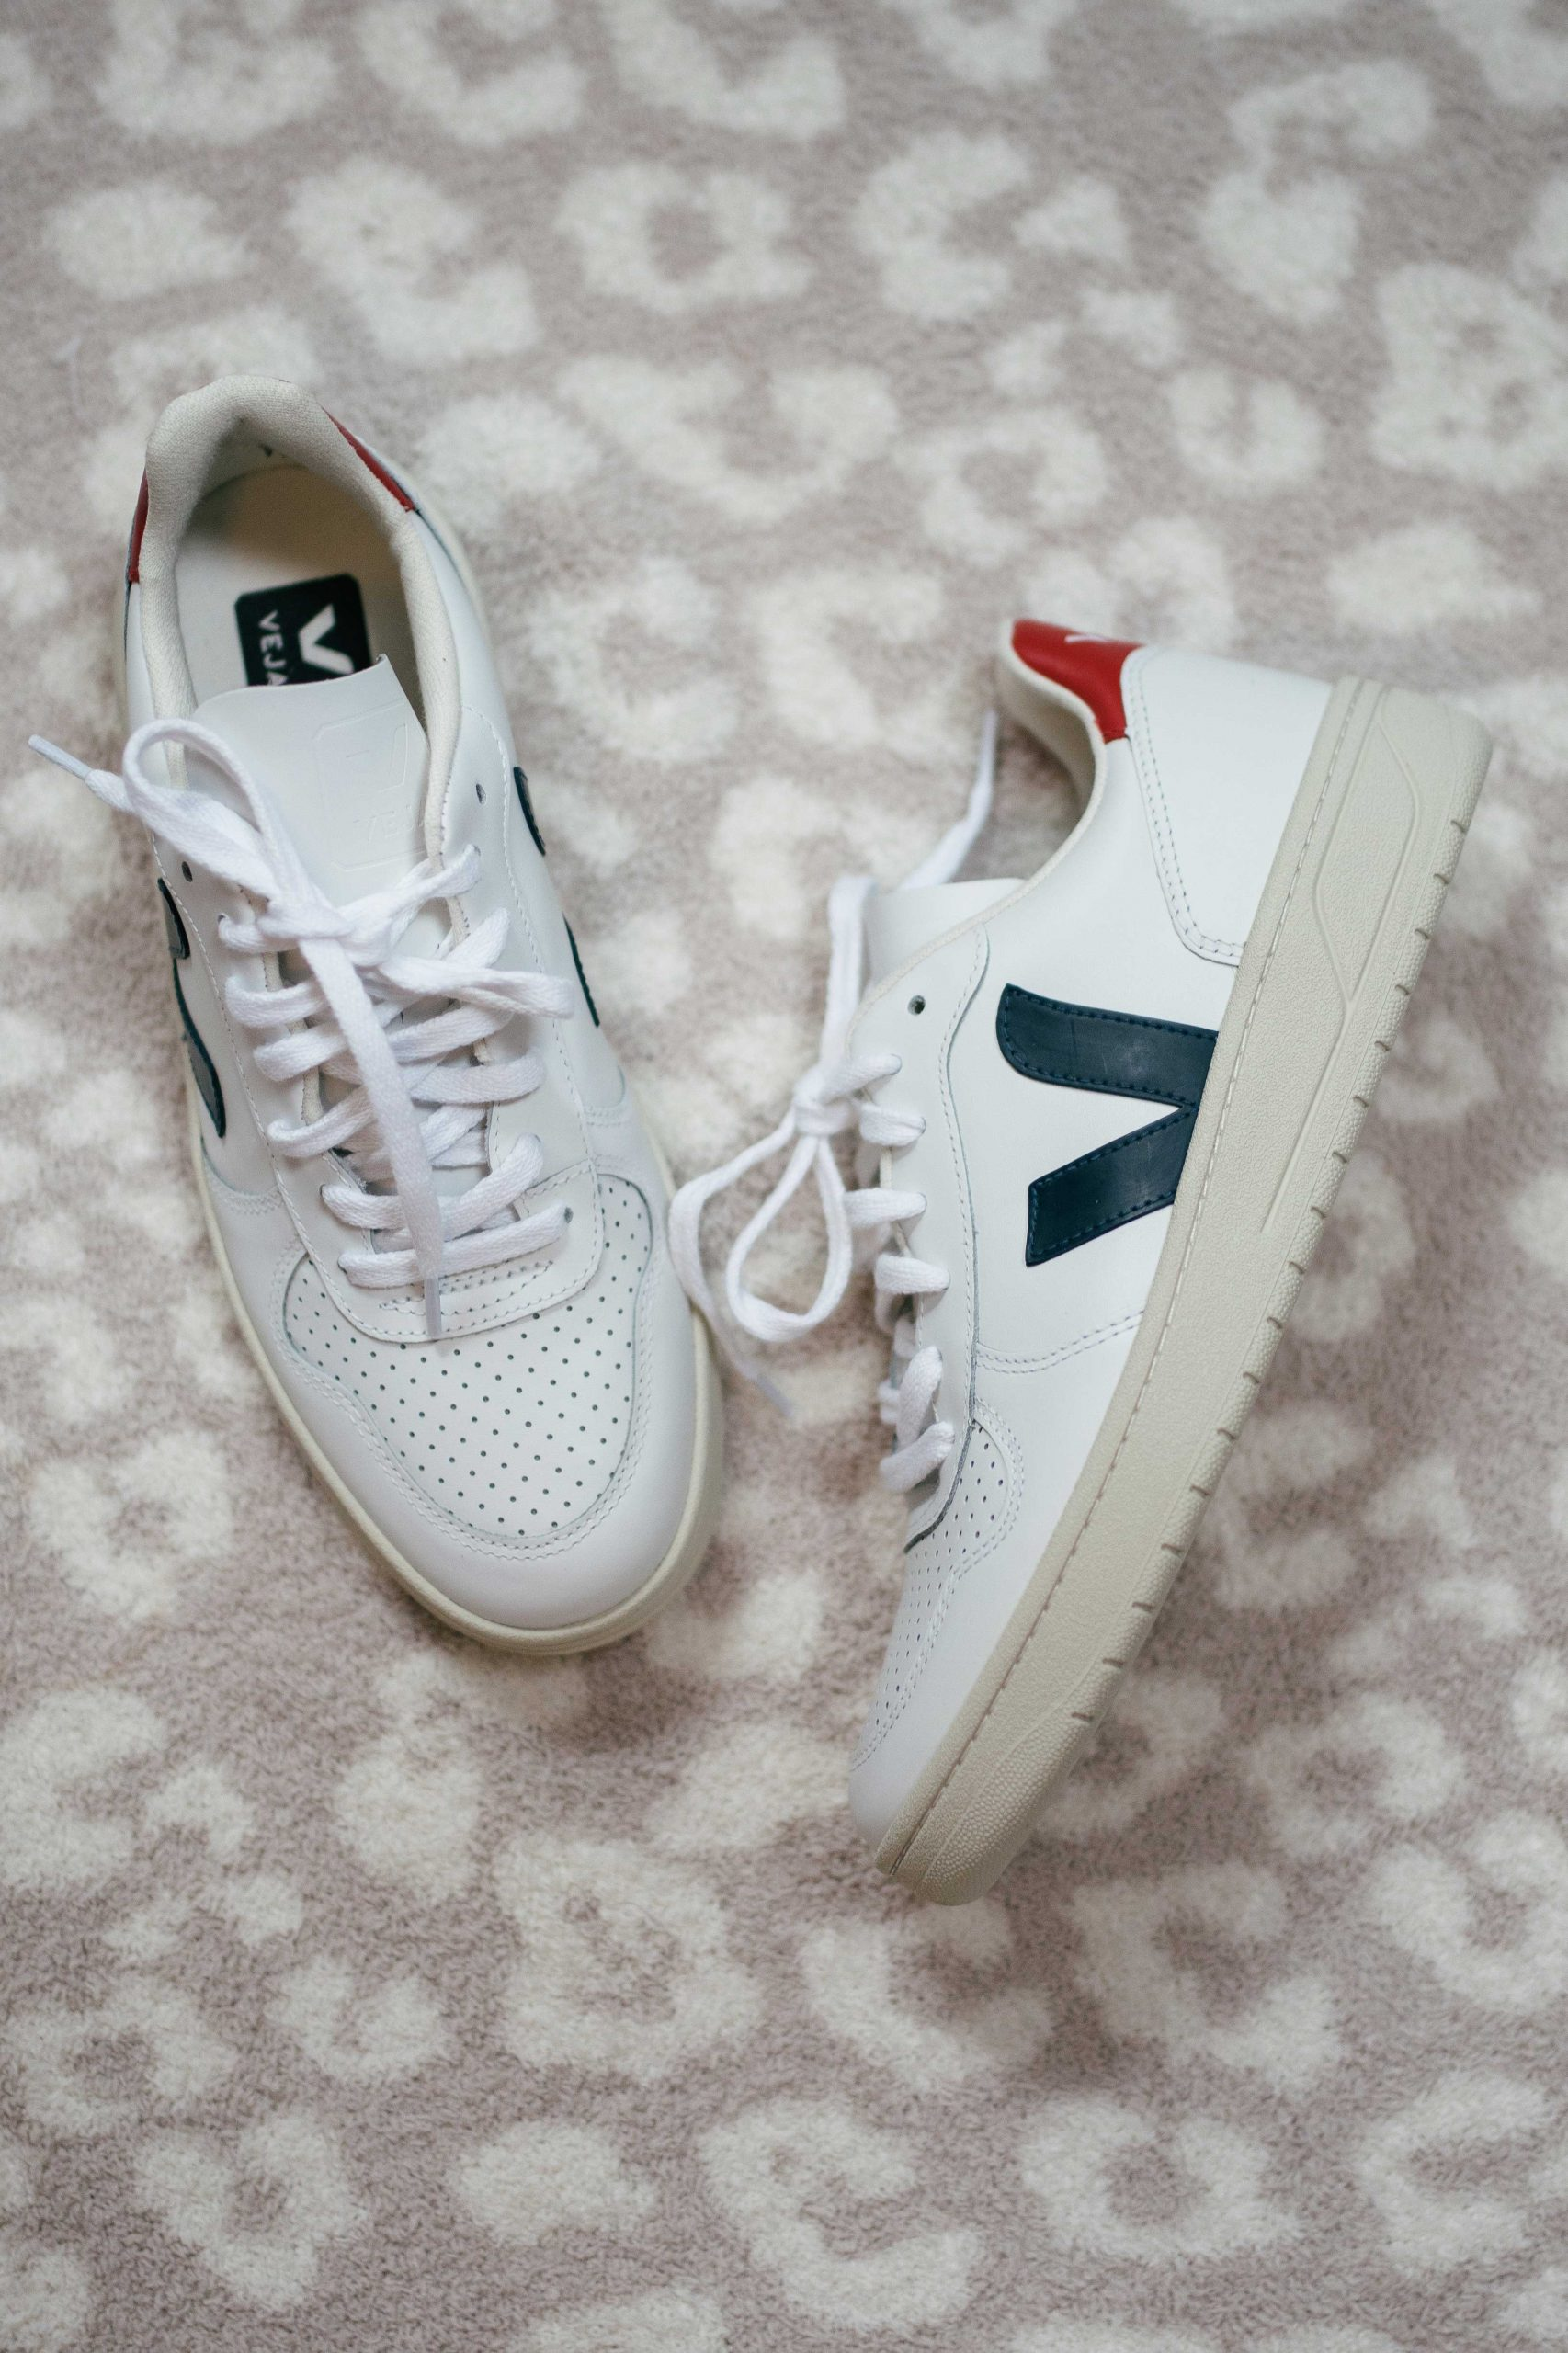 Virginia blogger, Lauren Dix, tries on 10 different pairs of white sneakers for the ultimate white sneaker review! The VEJA V-10 pictured here are included!